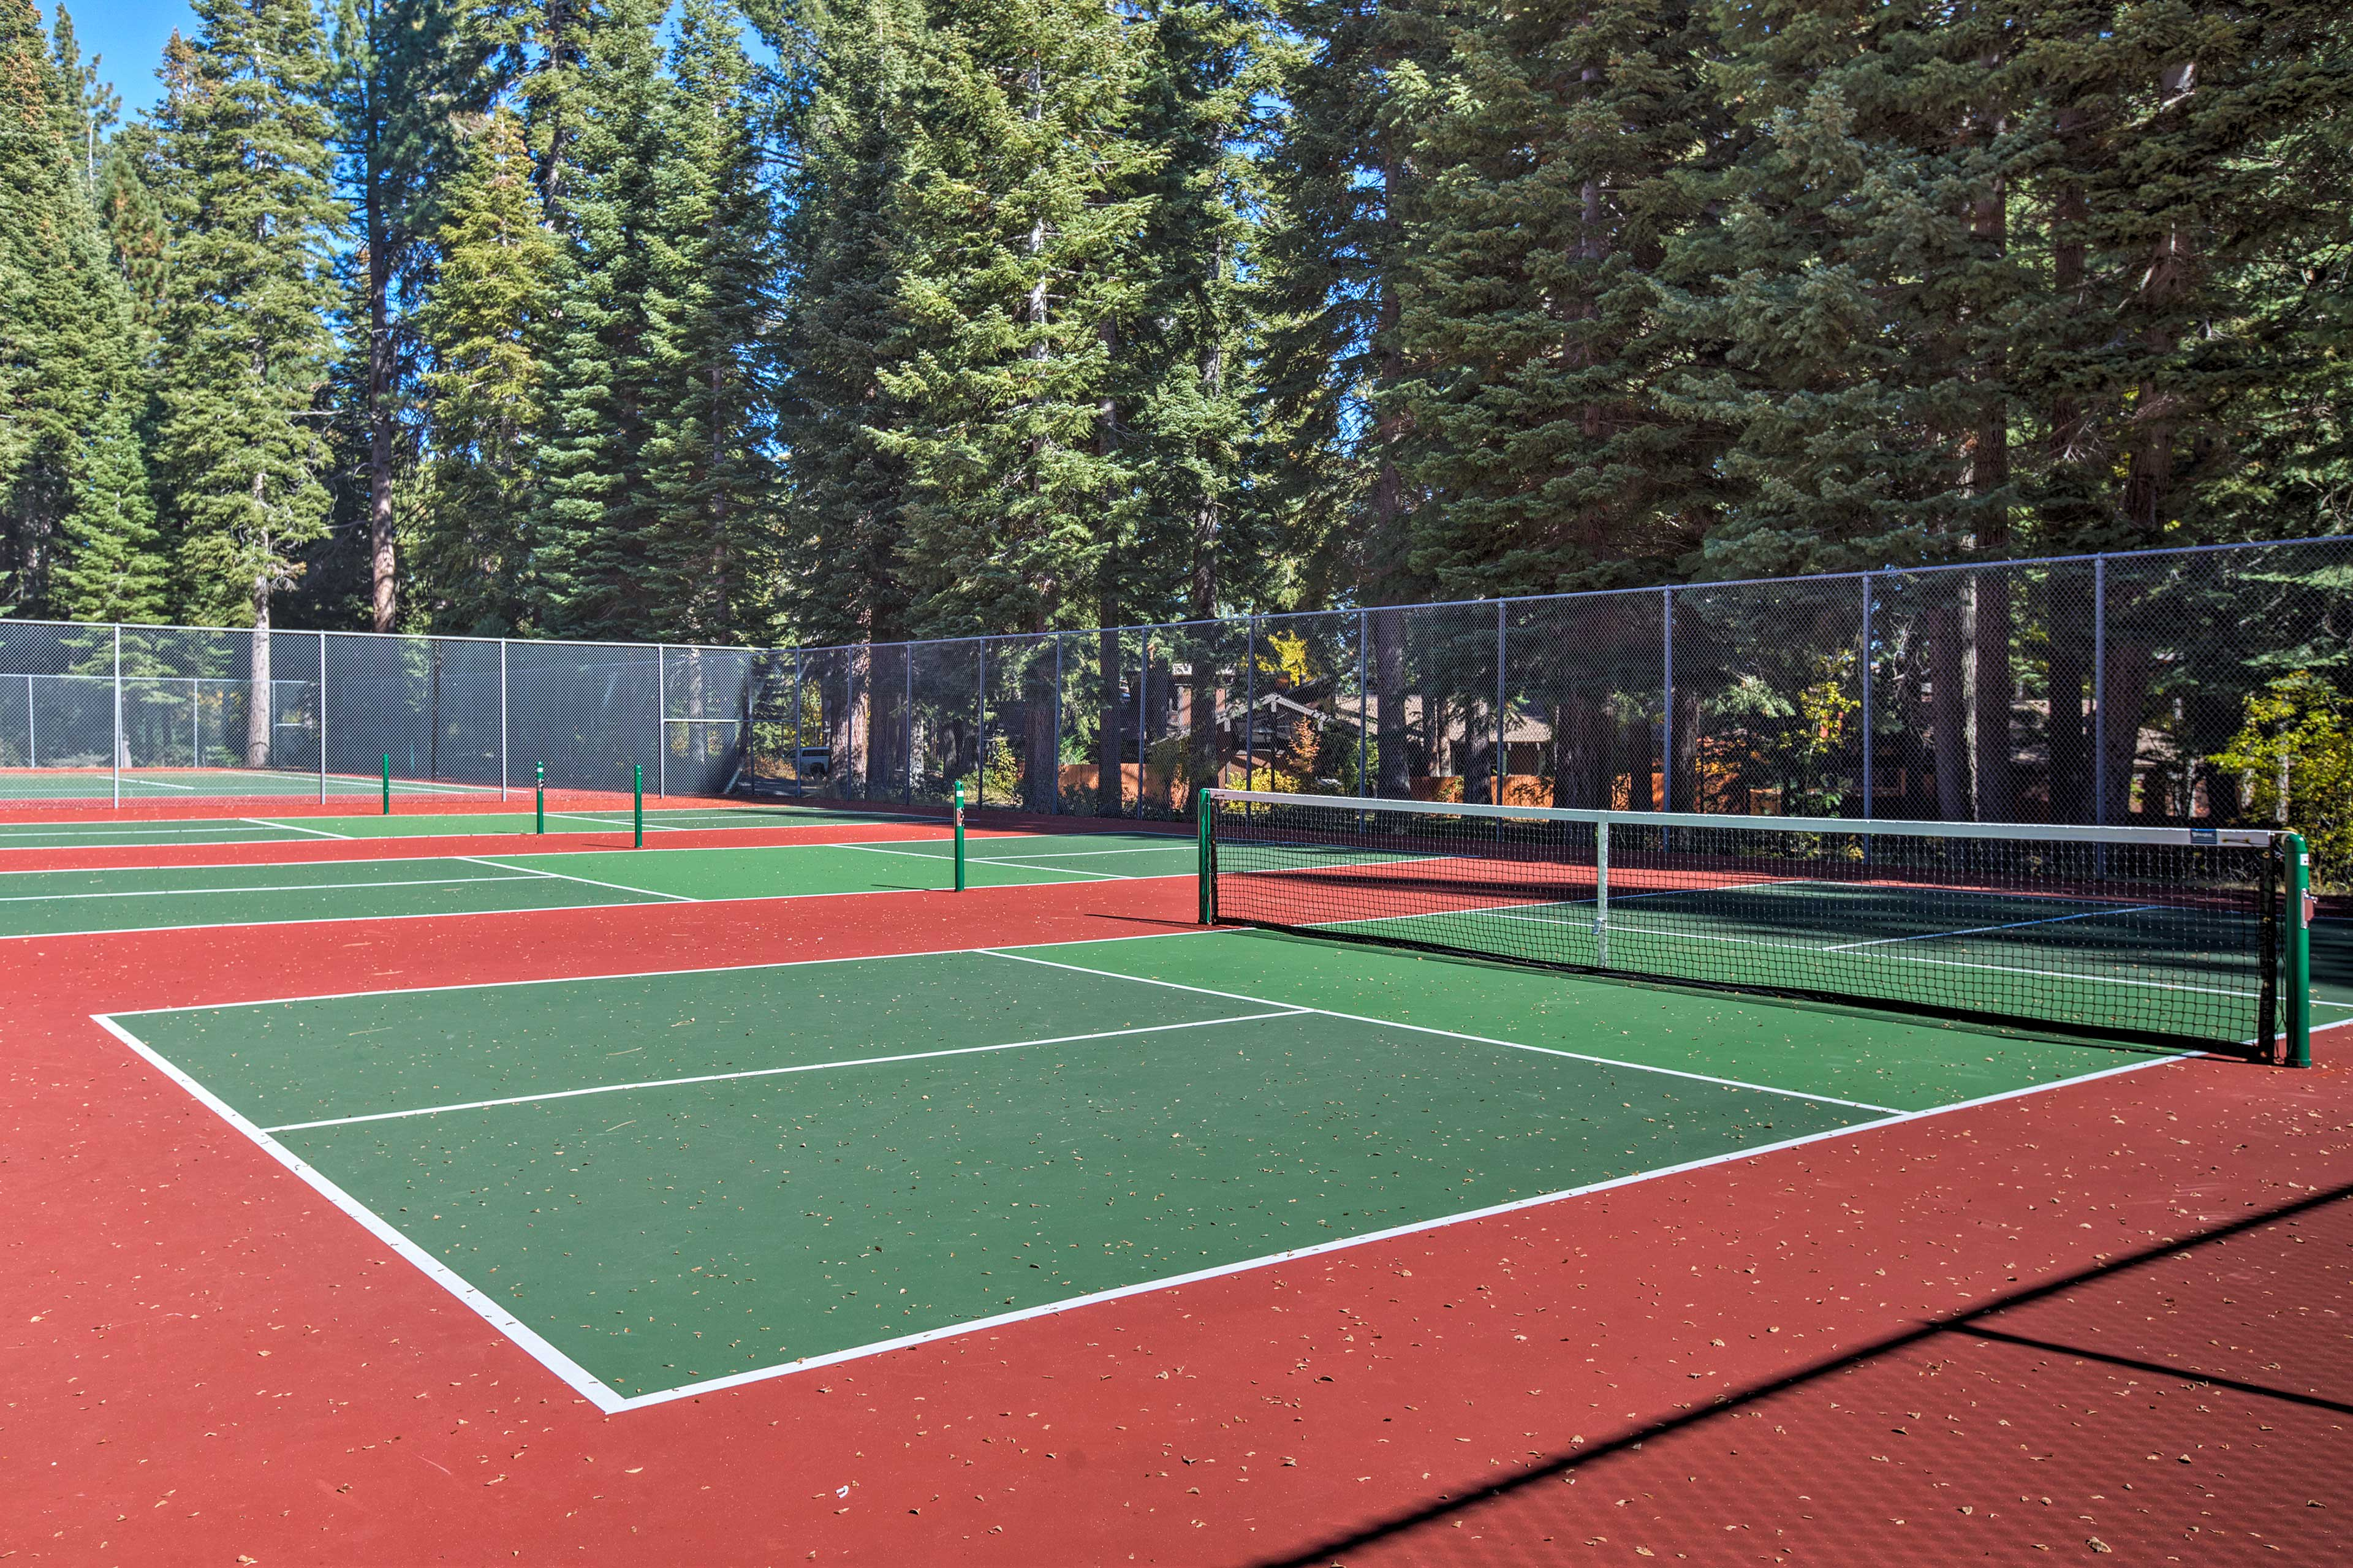 Challenge a partner to a friendly game of tennis.